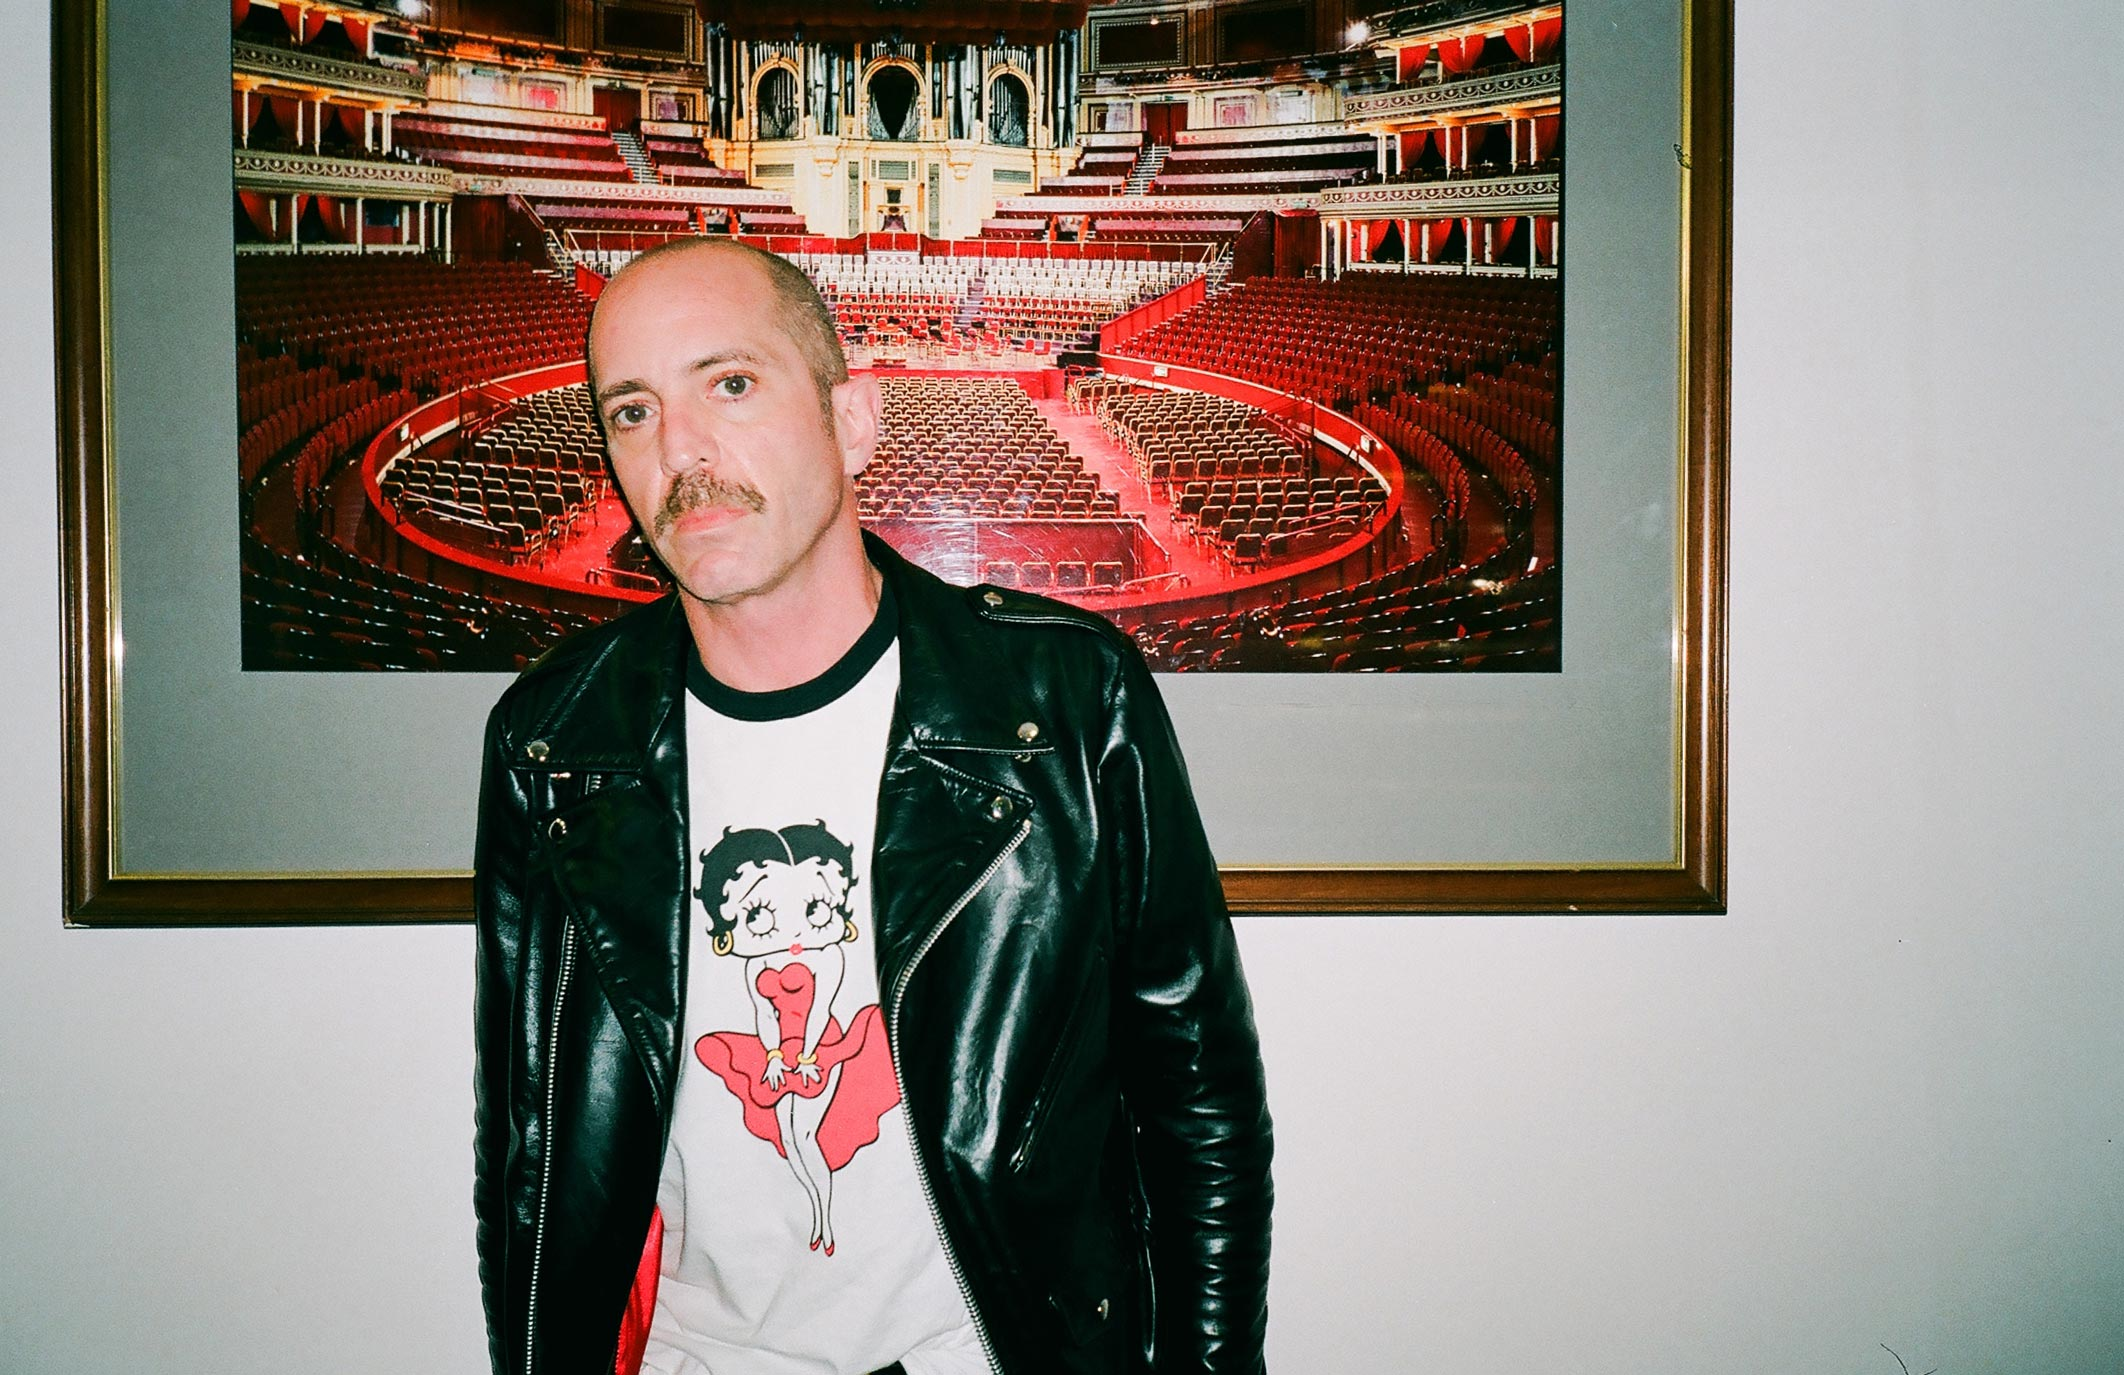 Matt Sweeney at the Royal Albert Hall in London. Photo by Steven T. Hanley.